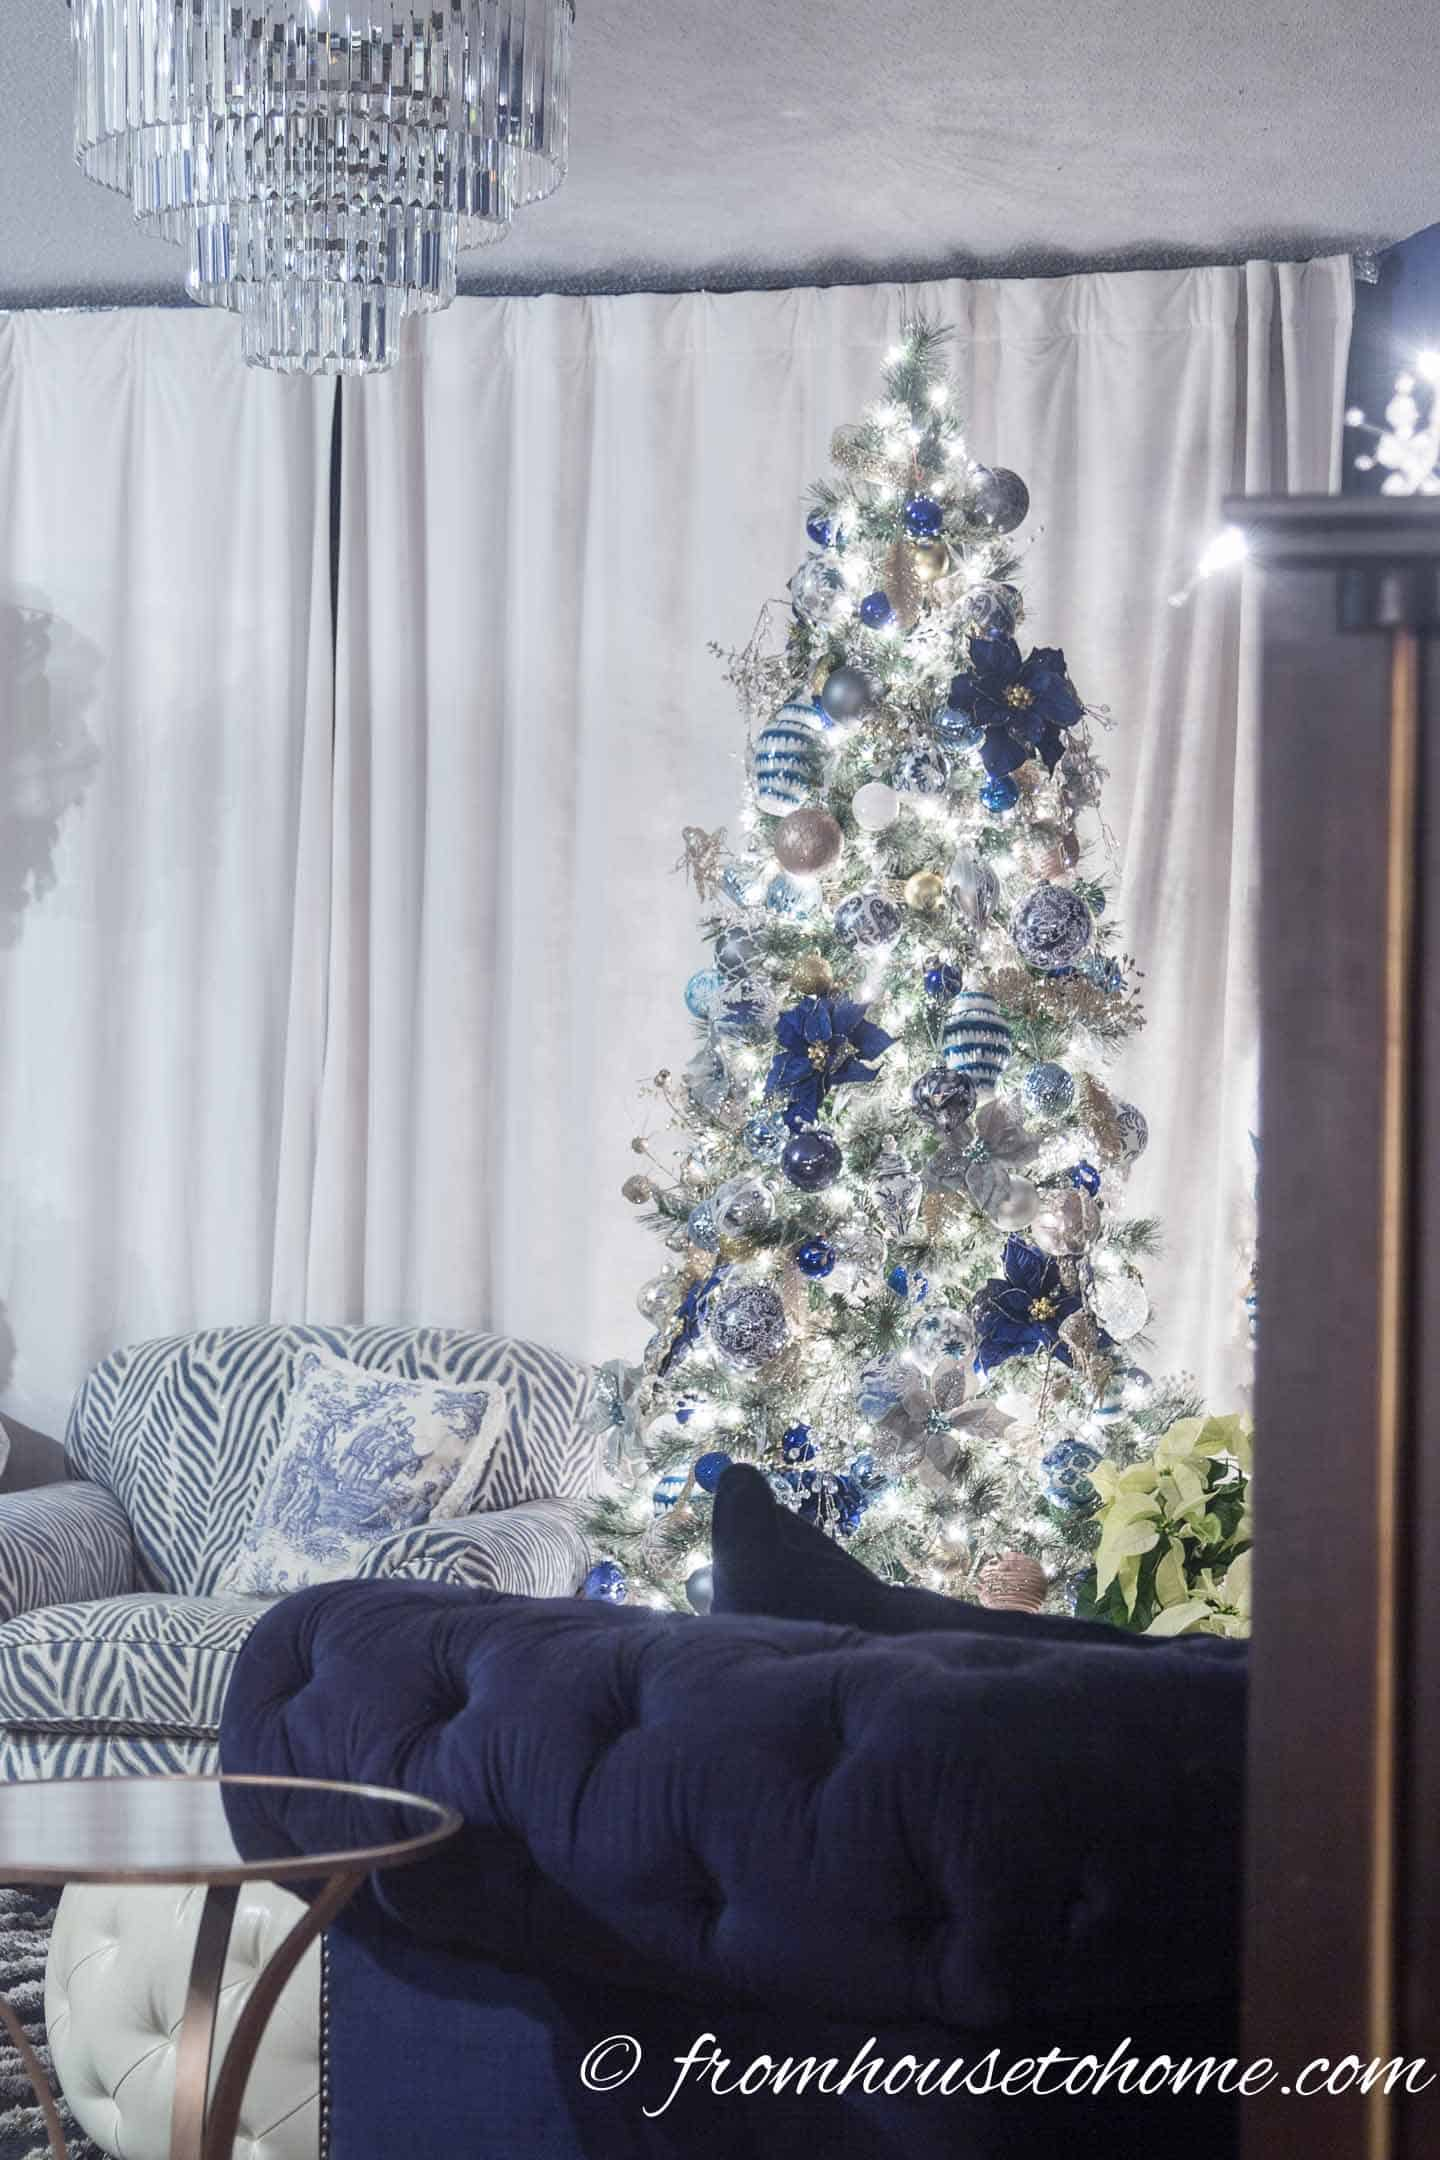 Blue and white Christmas tree behind a blue sofa